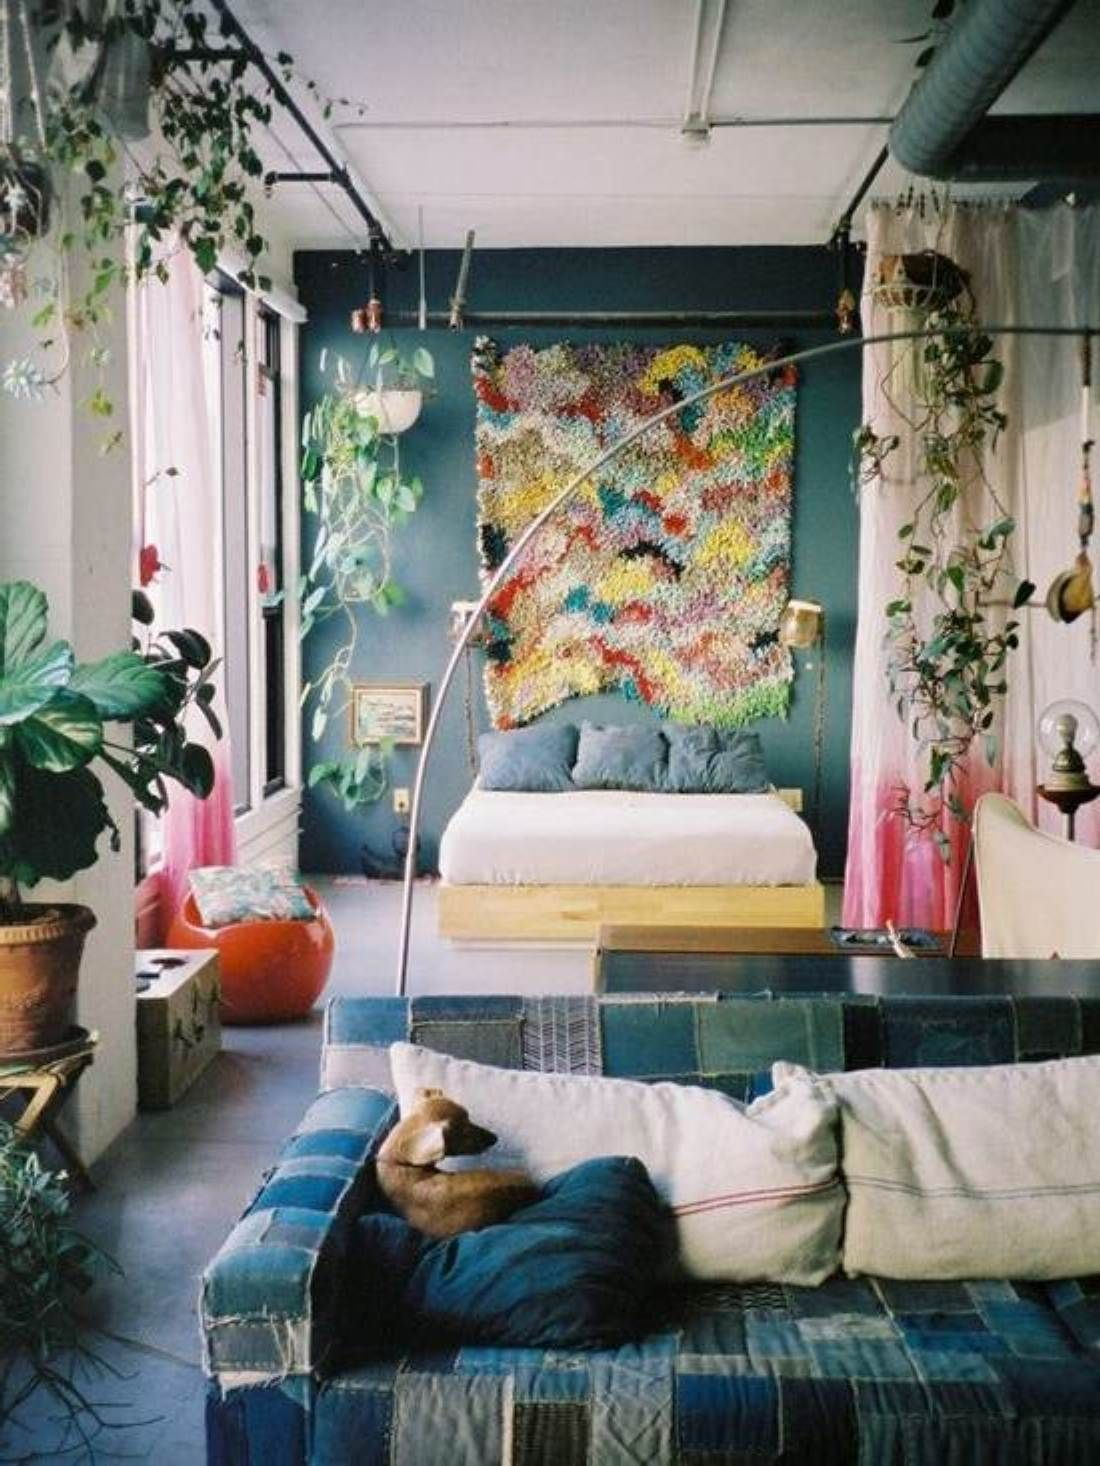 Boho chic bedroom decor: boho chic bedroom decor with hanging ivy plants also  cool fabric sofa design feat orange floor seat